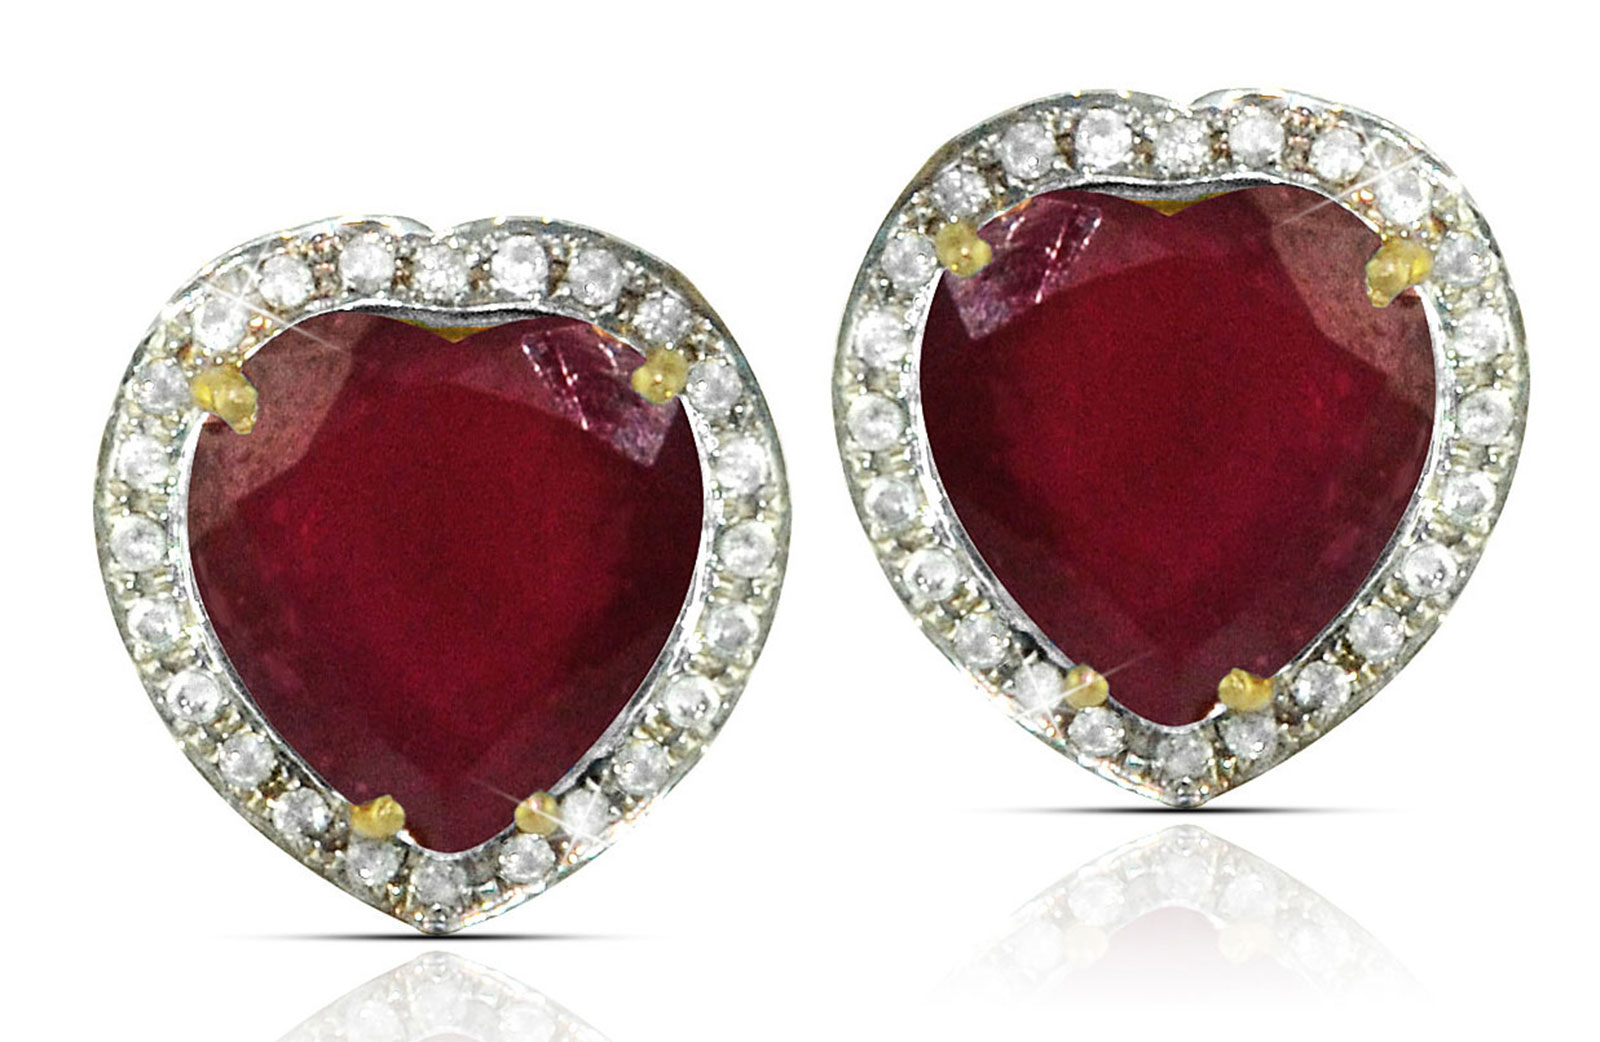 Vera Perla 18k  Gold 10mm Genuine Heart  Cut Ruby 0.28Ct Genuine Diamonds earrings